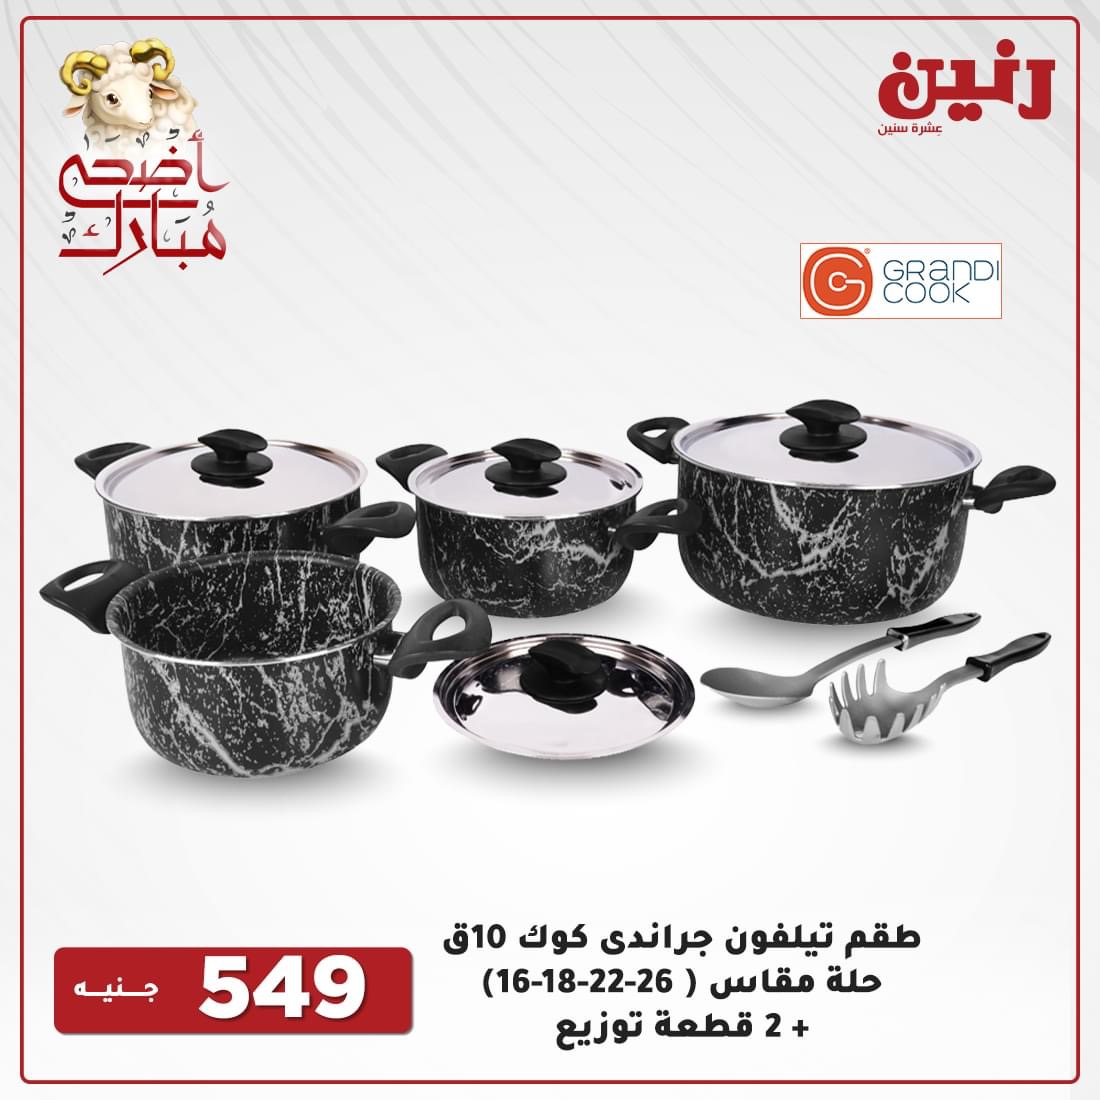 Today's ringing offers for appliances and household appliances from July 22 to 24, 2021 37